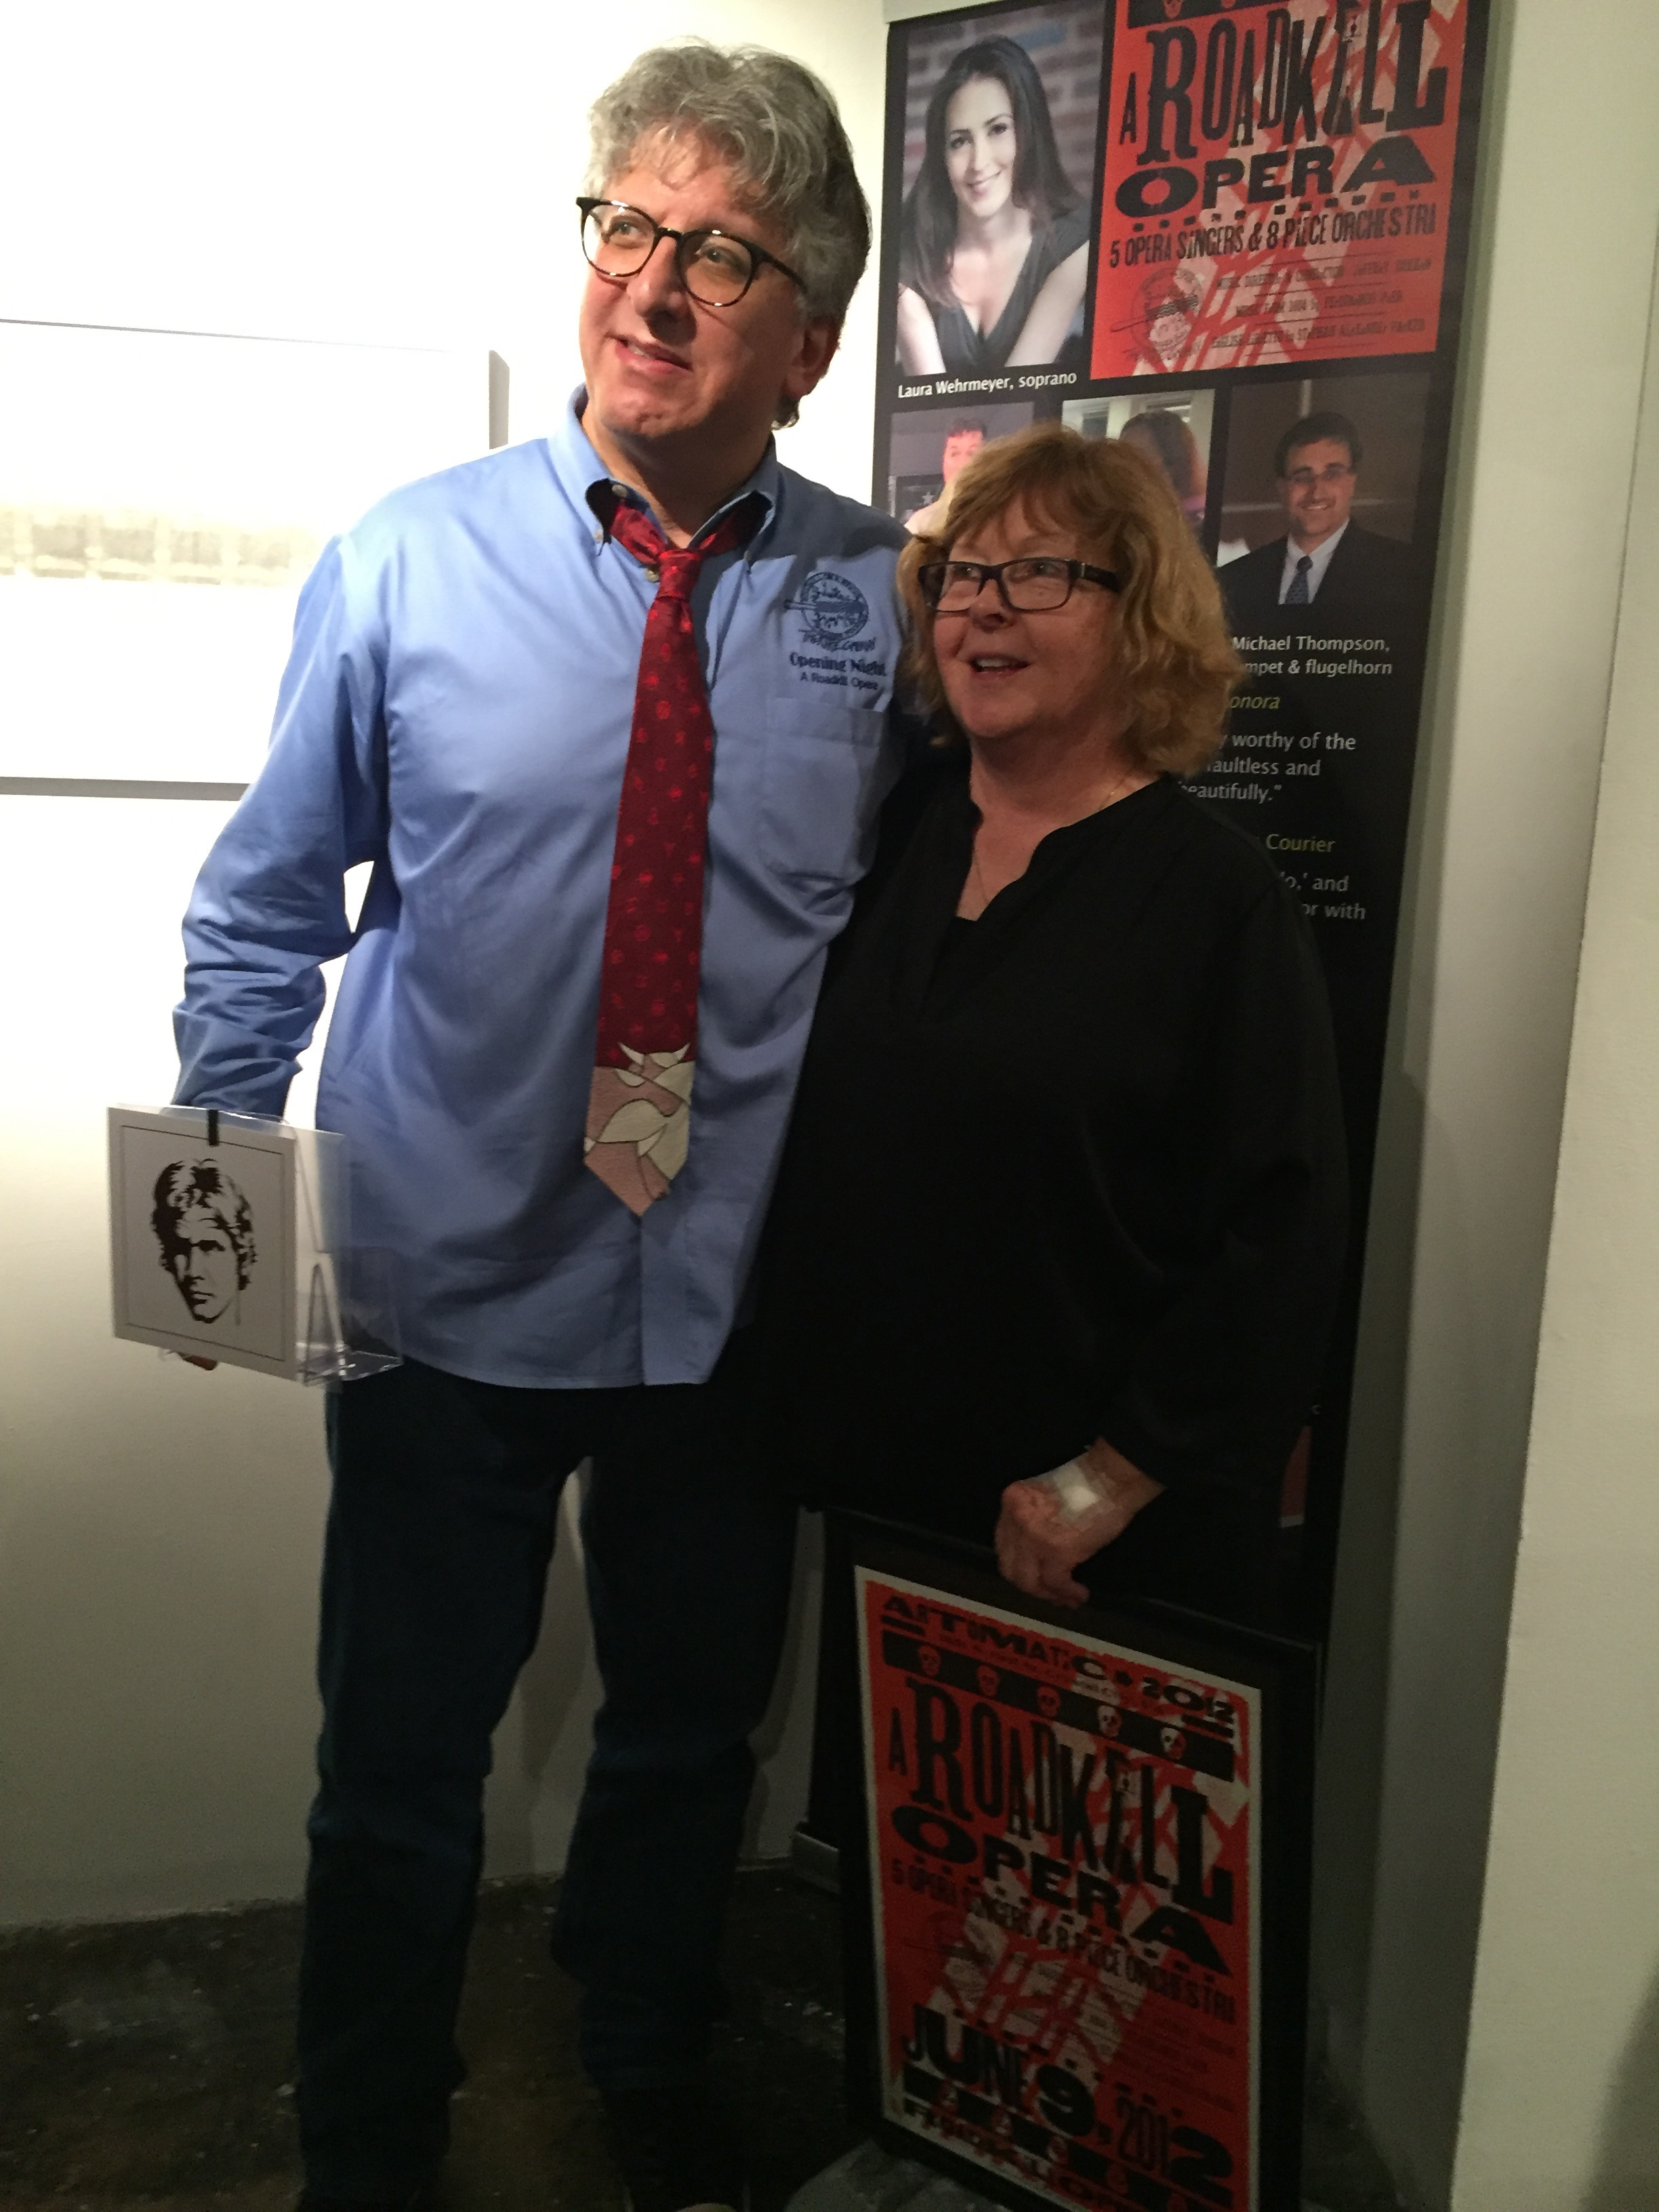 Photo of Parker and Choupin standing in front of hammer at A Roadkill Opera world premiere performances in January 2016 at the Mead Theater Lab at Flashpoint in Washington, DC